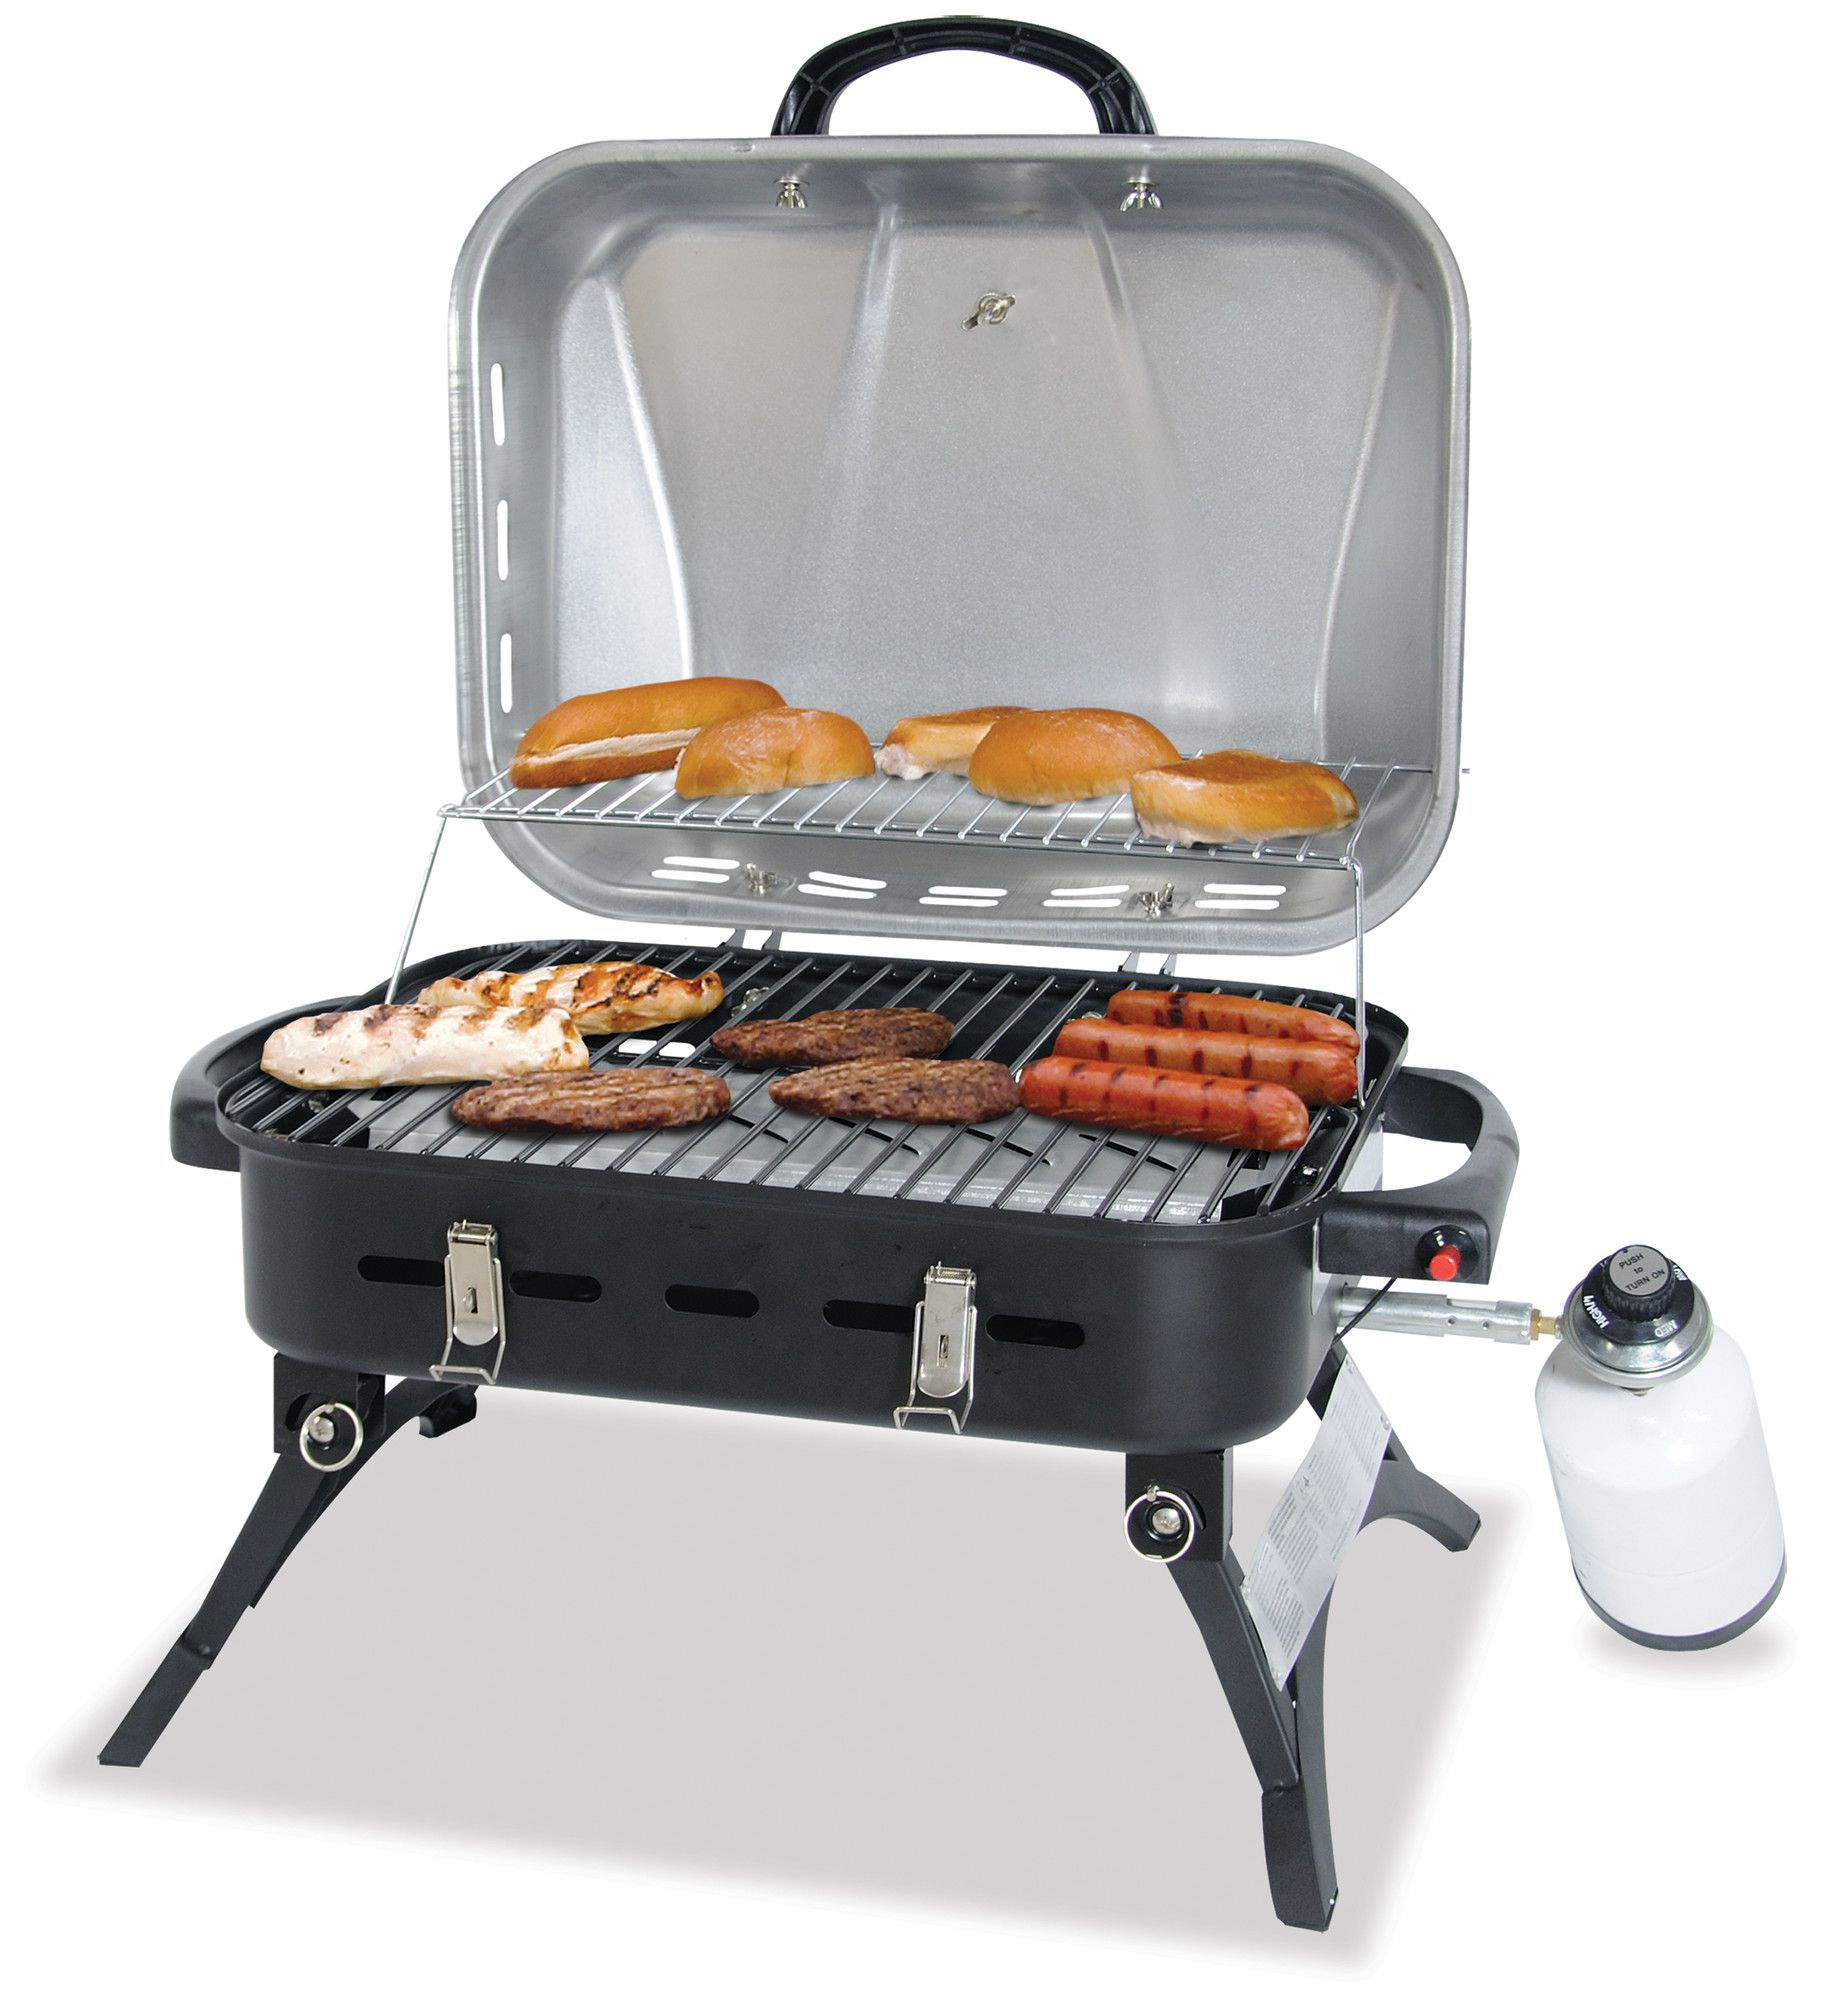 Uniflame Stainless Steel LP Gas Barbeque Grill